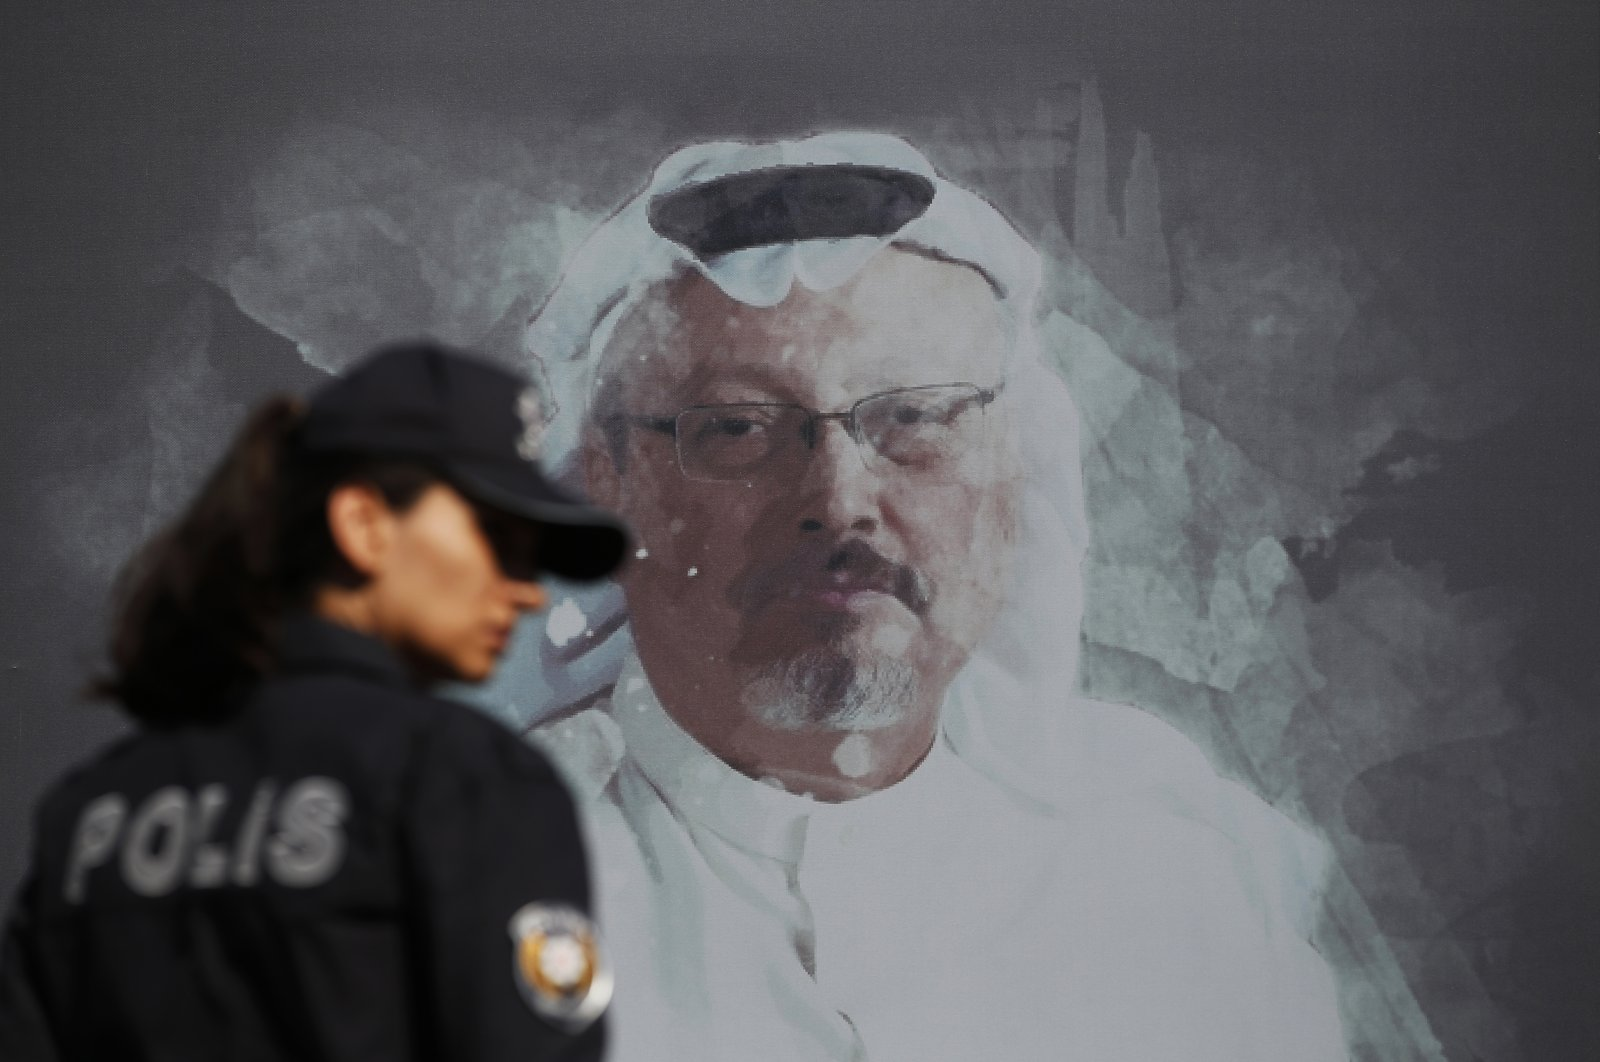 A Turkish police officer walks past a picture of slain Saudi journalist Jamal Khashoggi prior to a ceremony, near the Saudi Arabia consulate in Istanbul, marking the one-year anniversary of his death, Wednesday, Oct. 2, 2019. (AP File Photo)